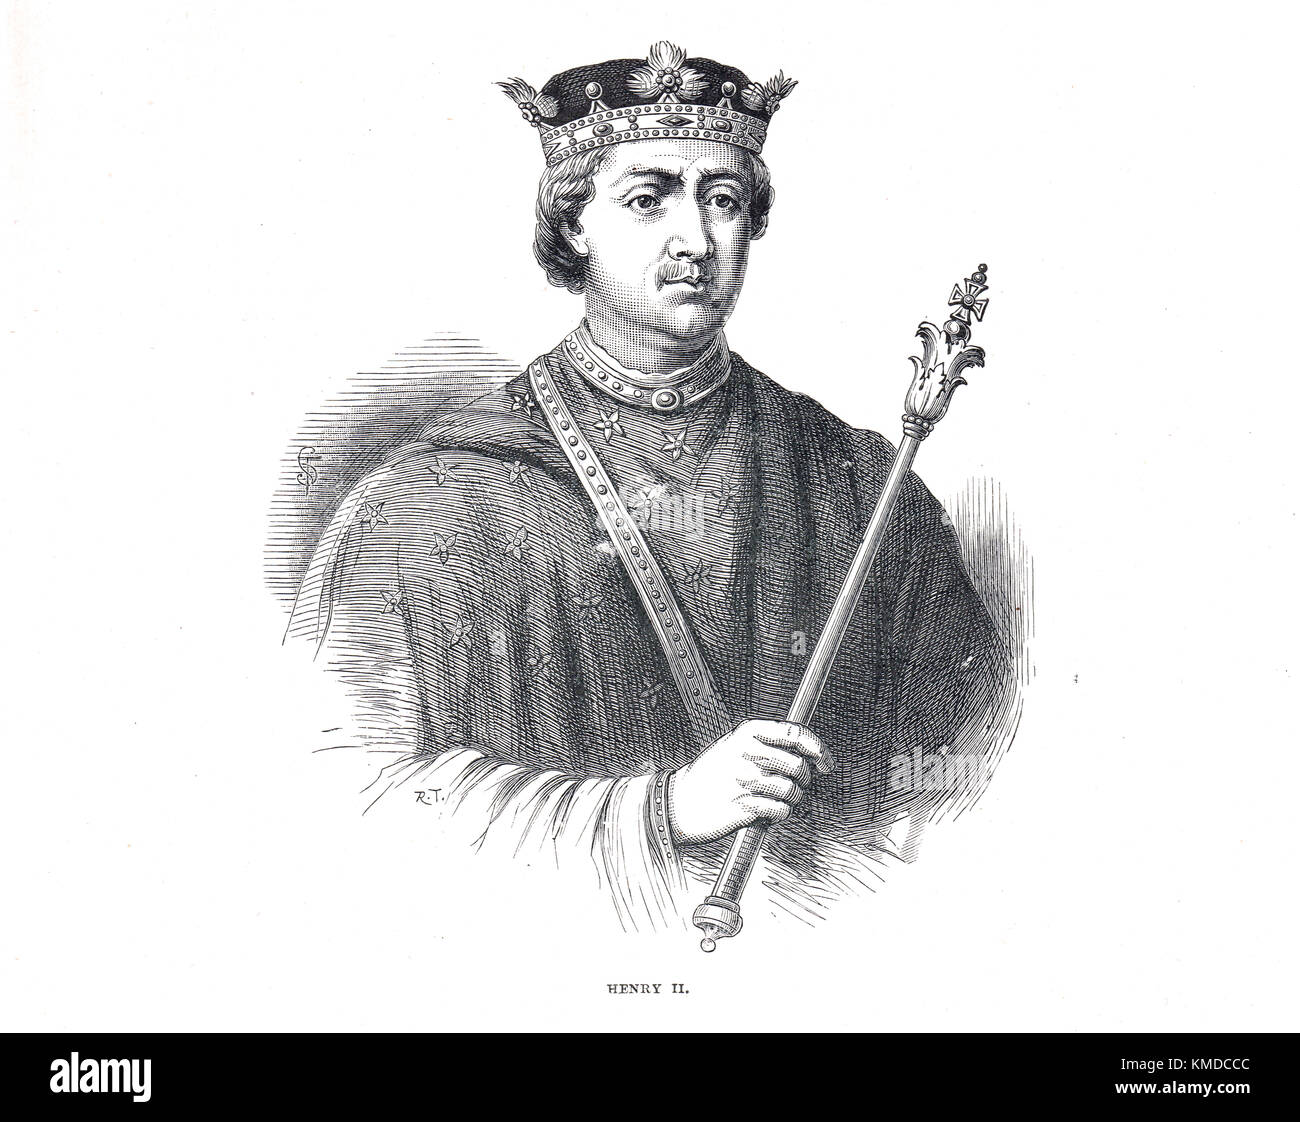 `King Henry II of England, 1133-1189, reigned 1154-1189 - Stock Image